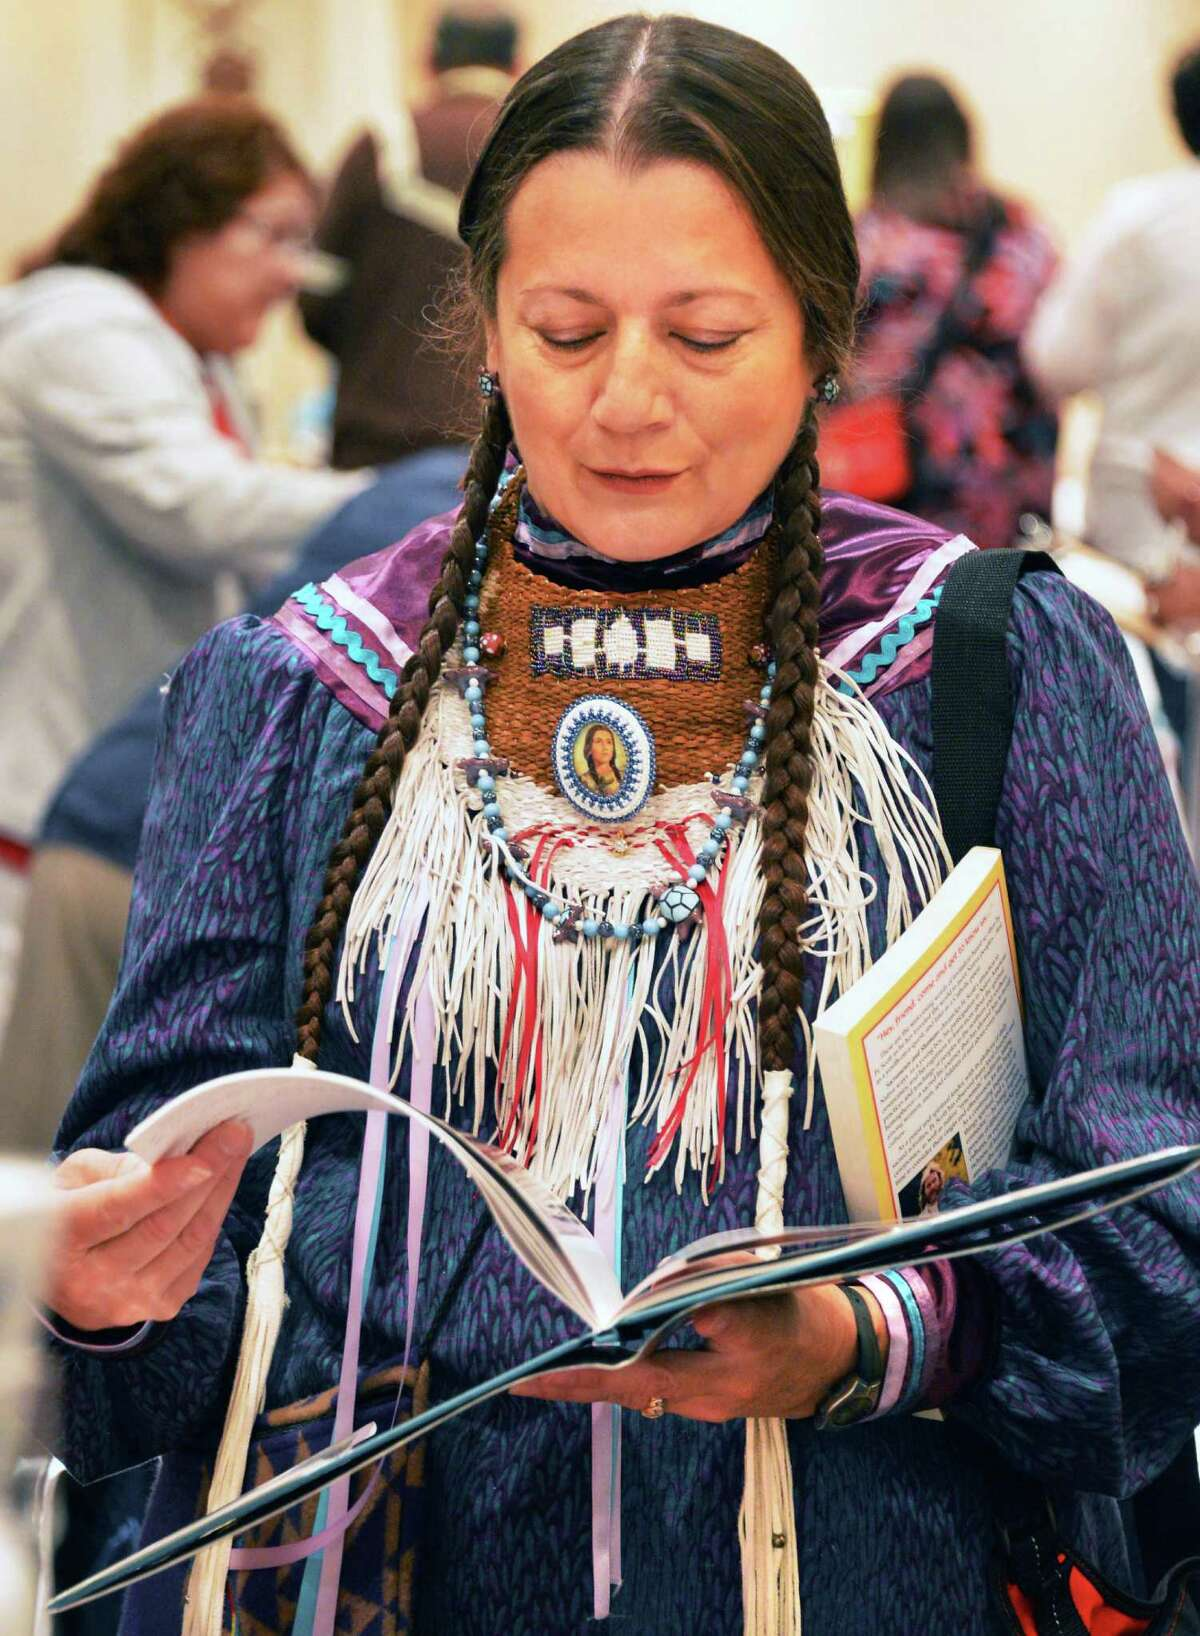 Julienne Montour of Taylor, Mich. looks at a book about Kateri Tekakwitha, at the 73rd Annual Tekakwitha Conference in Colonie on Thursday, July 19, 2012. (John Carl D'Annibale / Times Union)